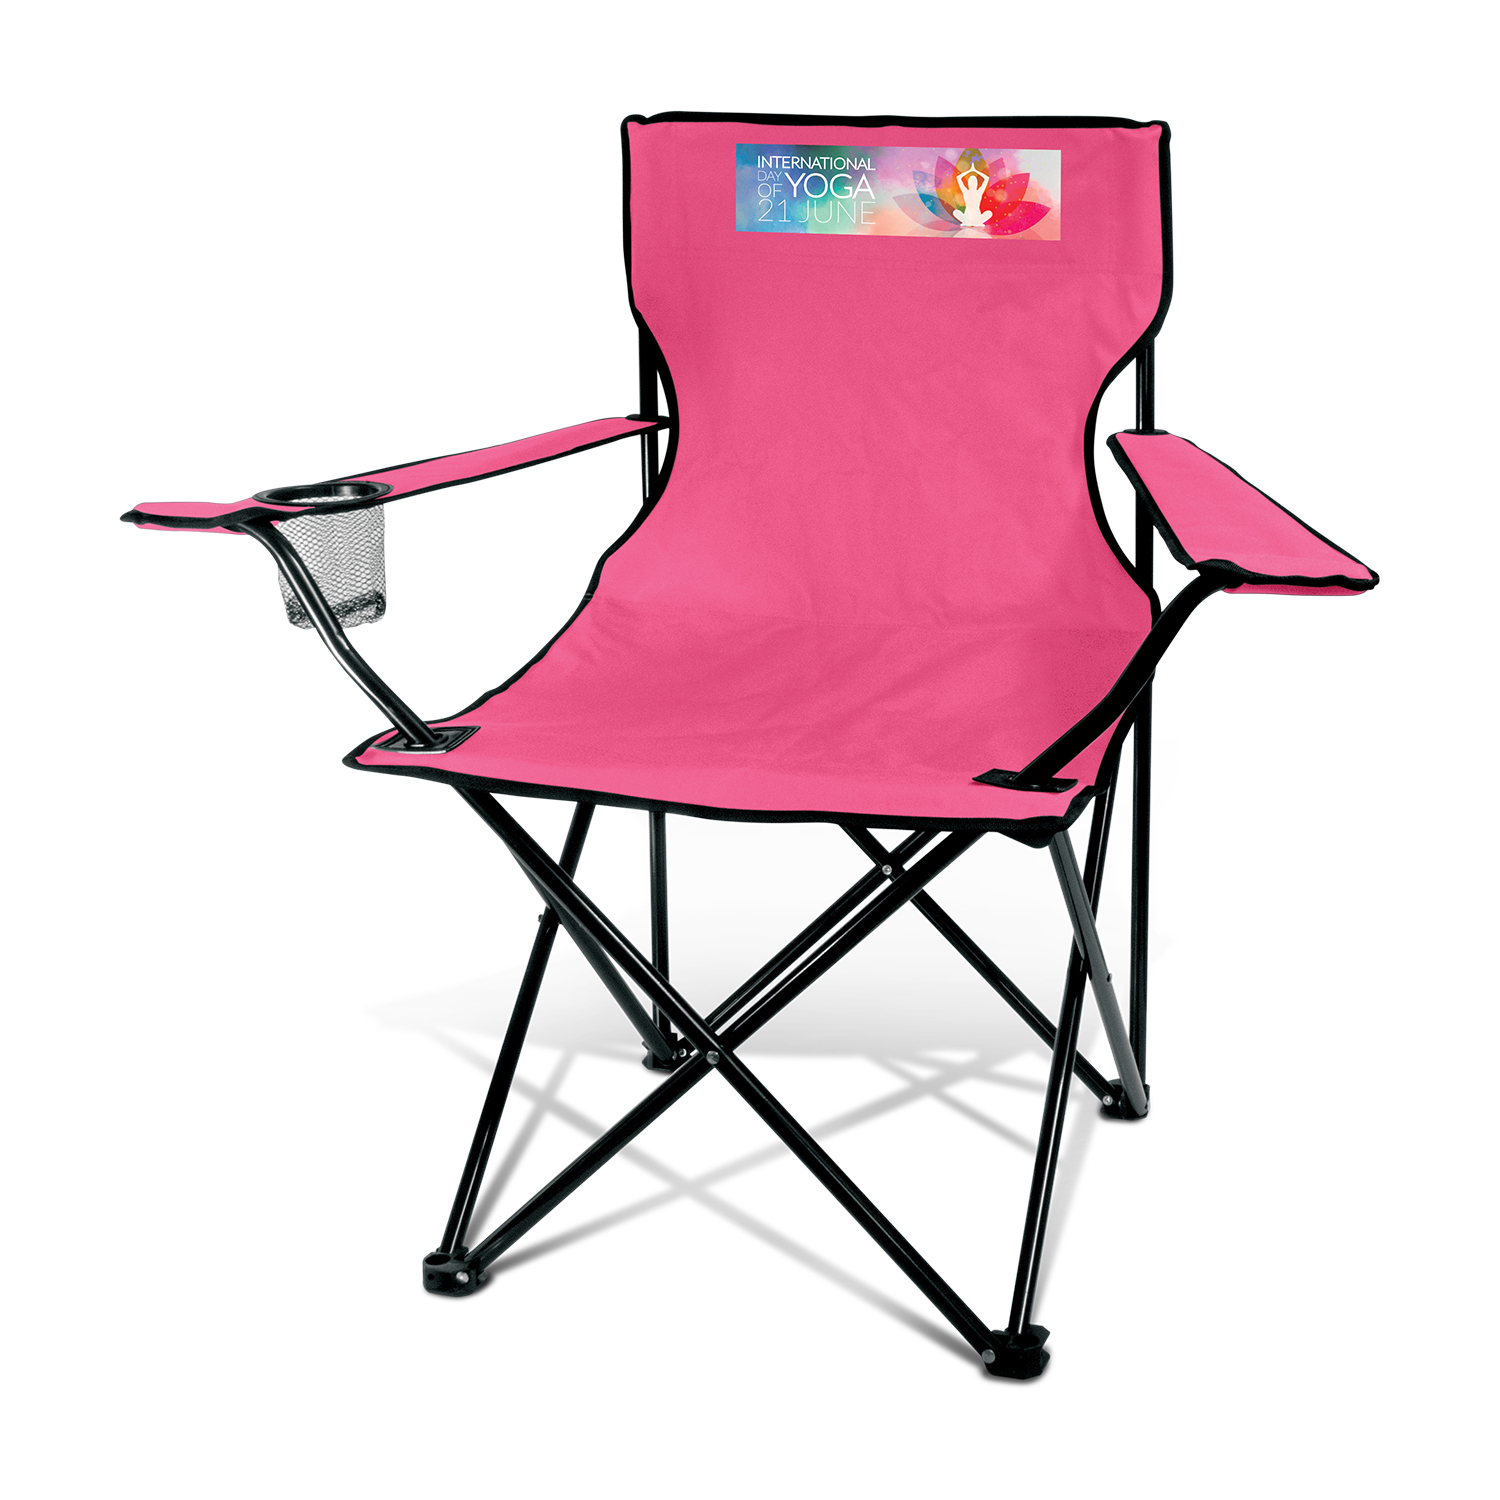 Memphis Folding Chair - MAPS Merchandise